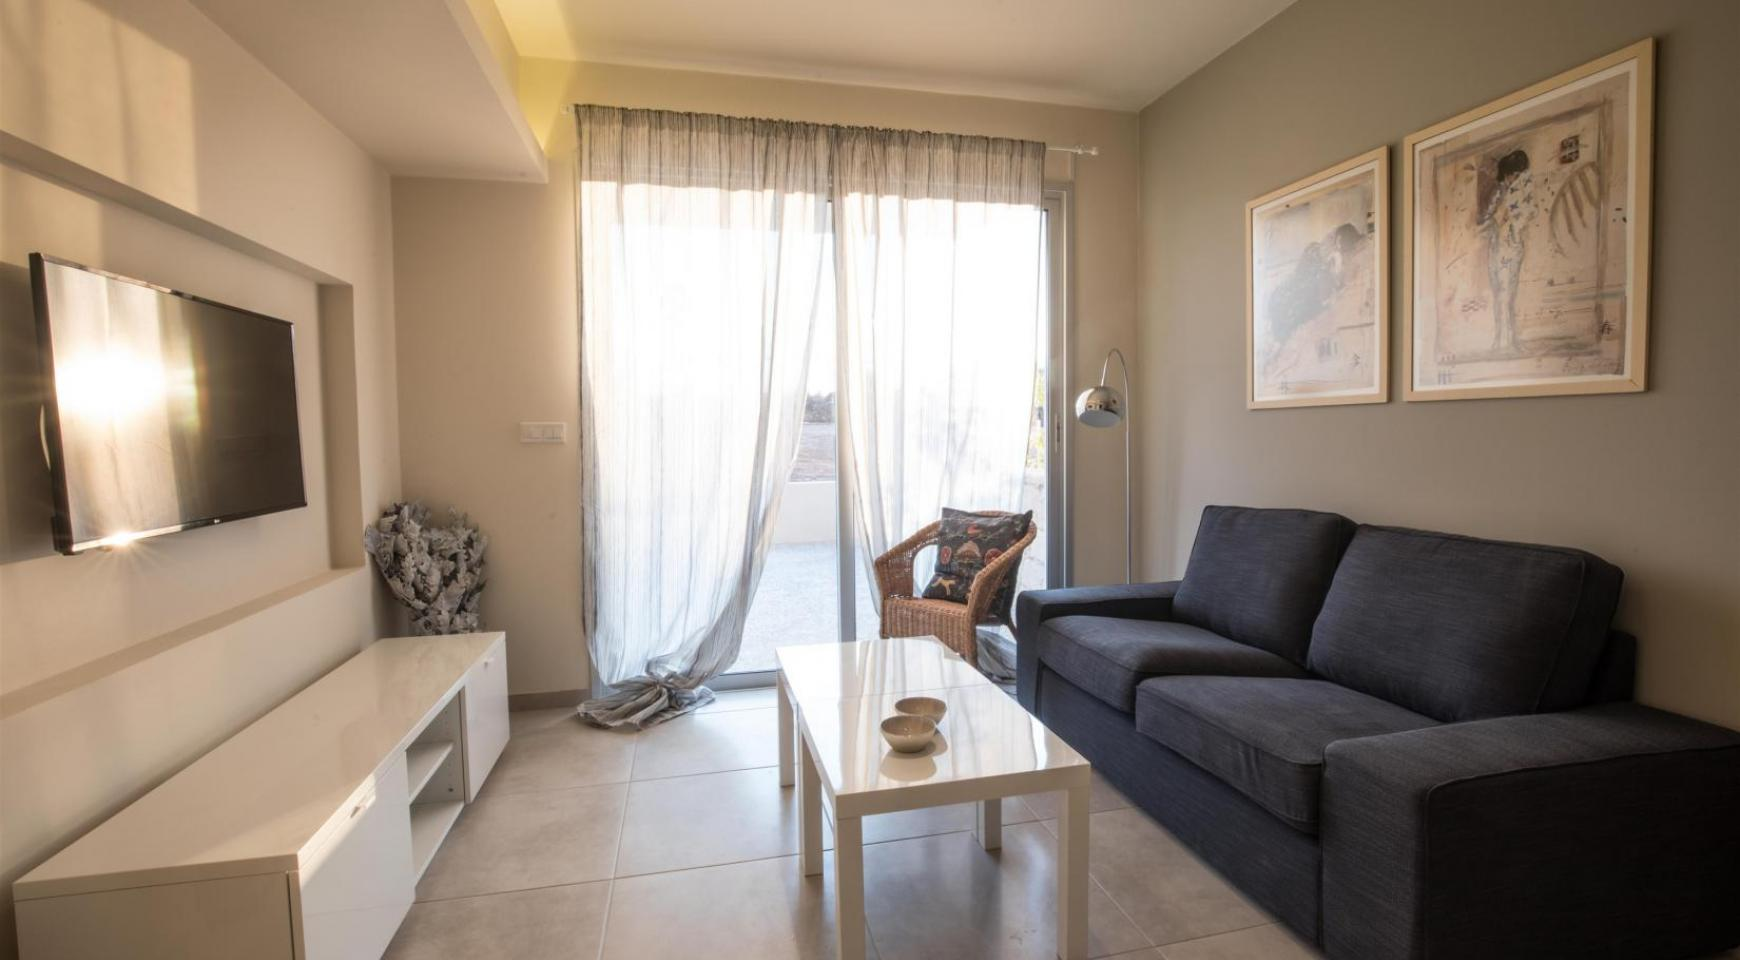 New 2 Bedroom Apartment in Kapparis Area - 3